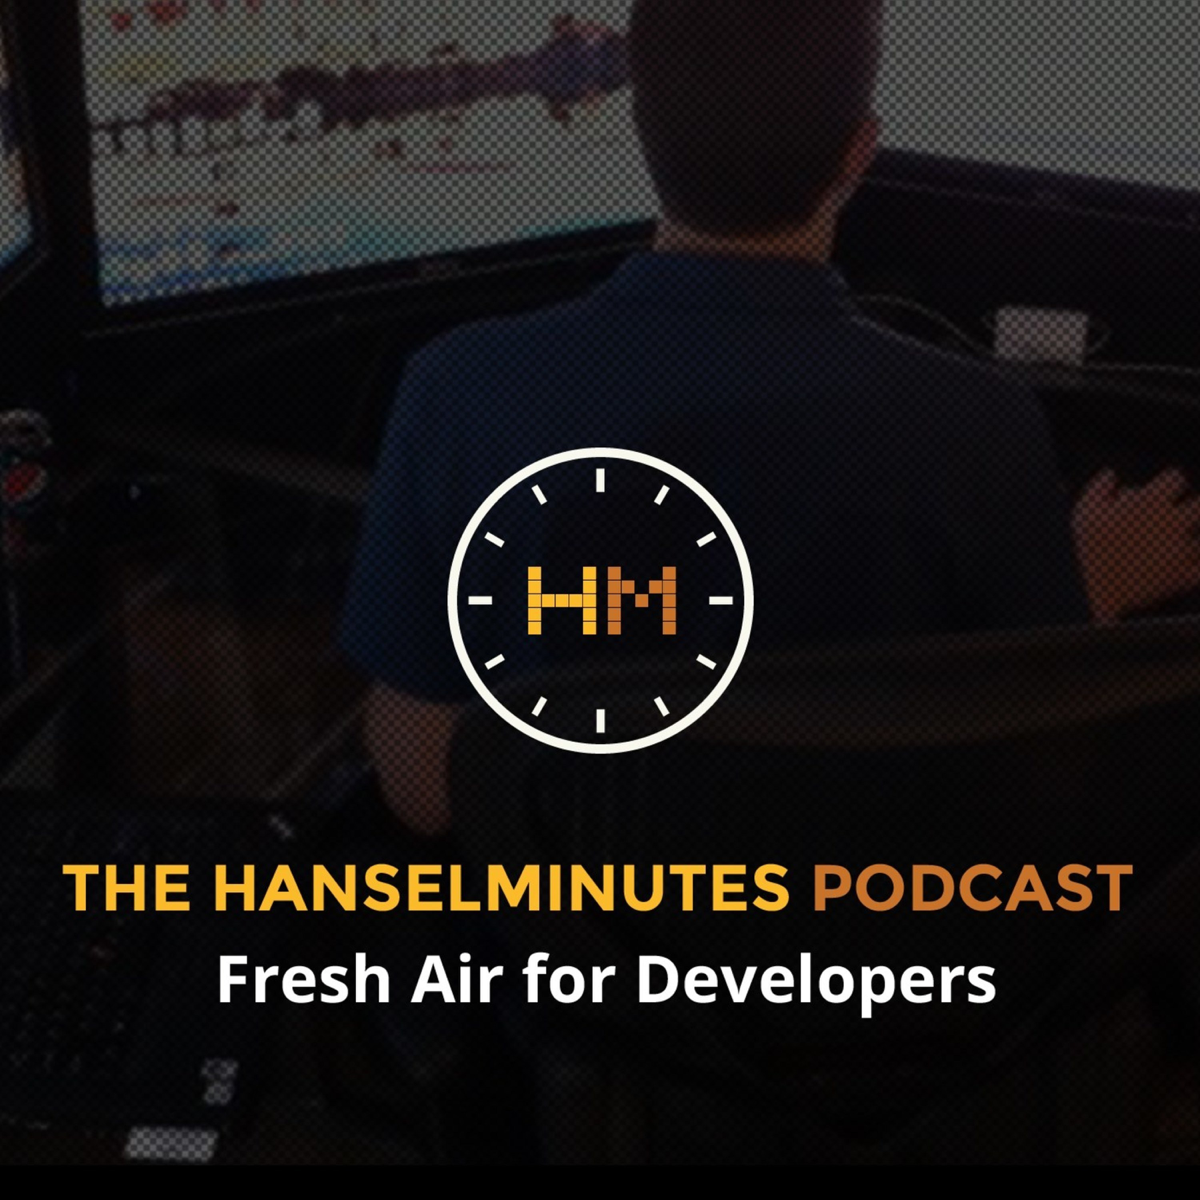 Best episodes of Hanselminutes - Fresh Talk and Tech for